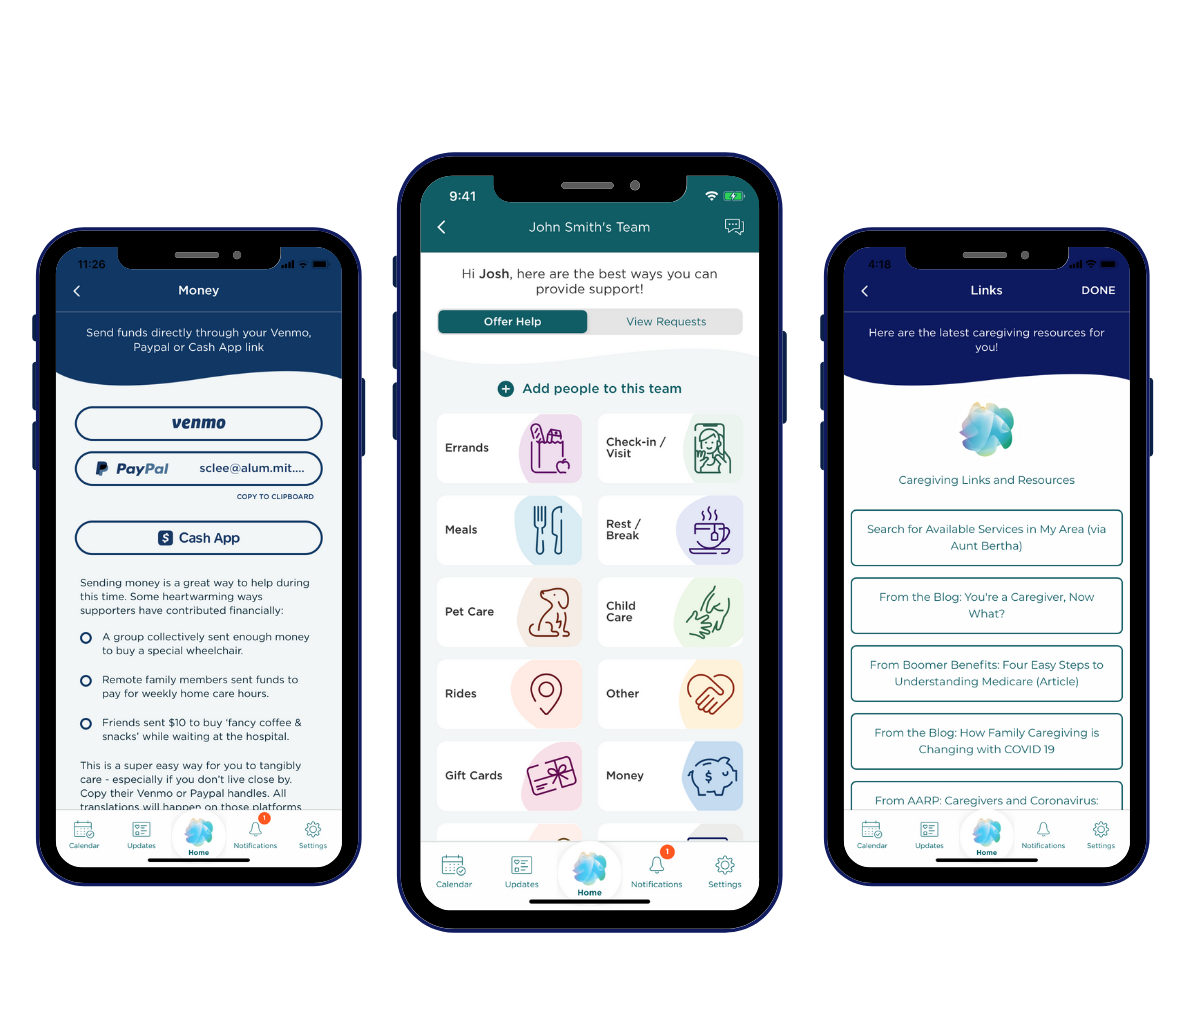 June 2020 updates to the ianacare app: New look, send money & get resources